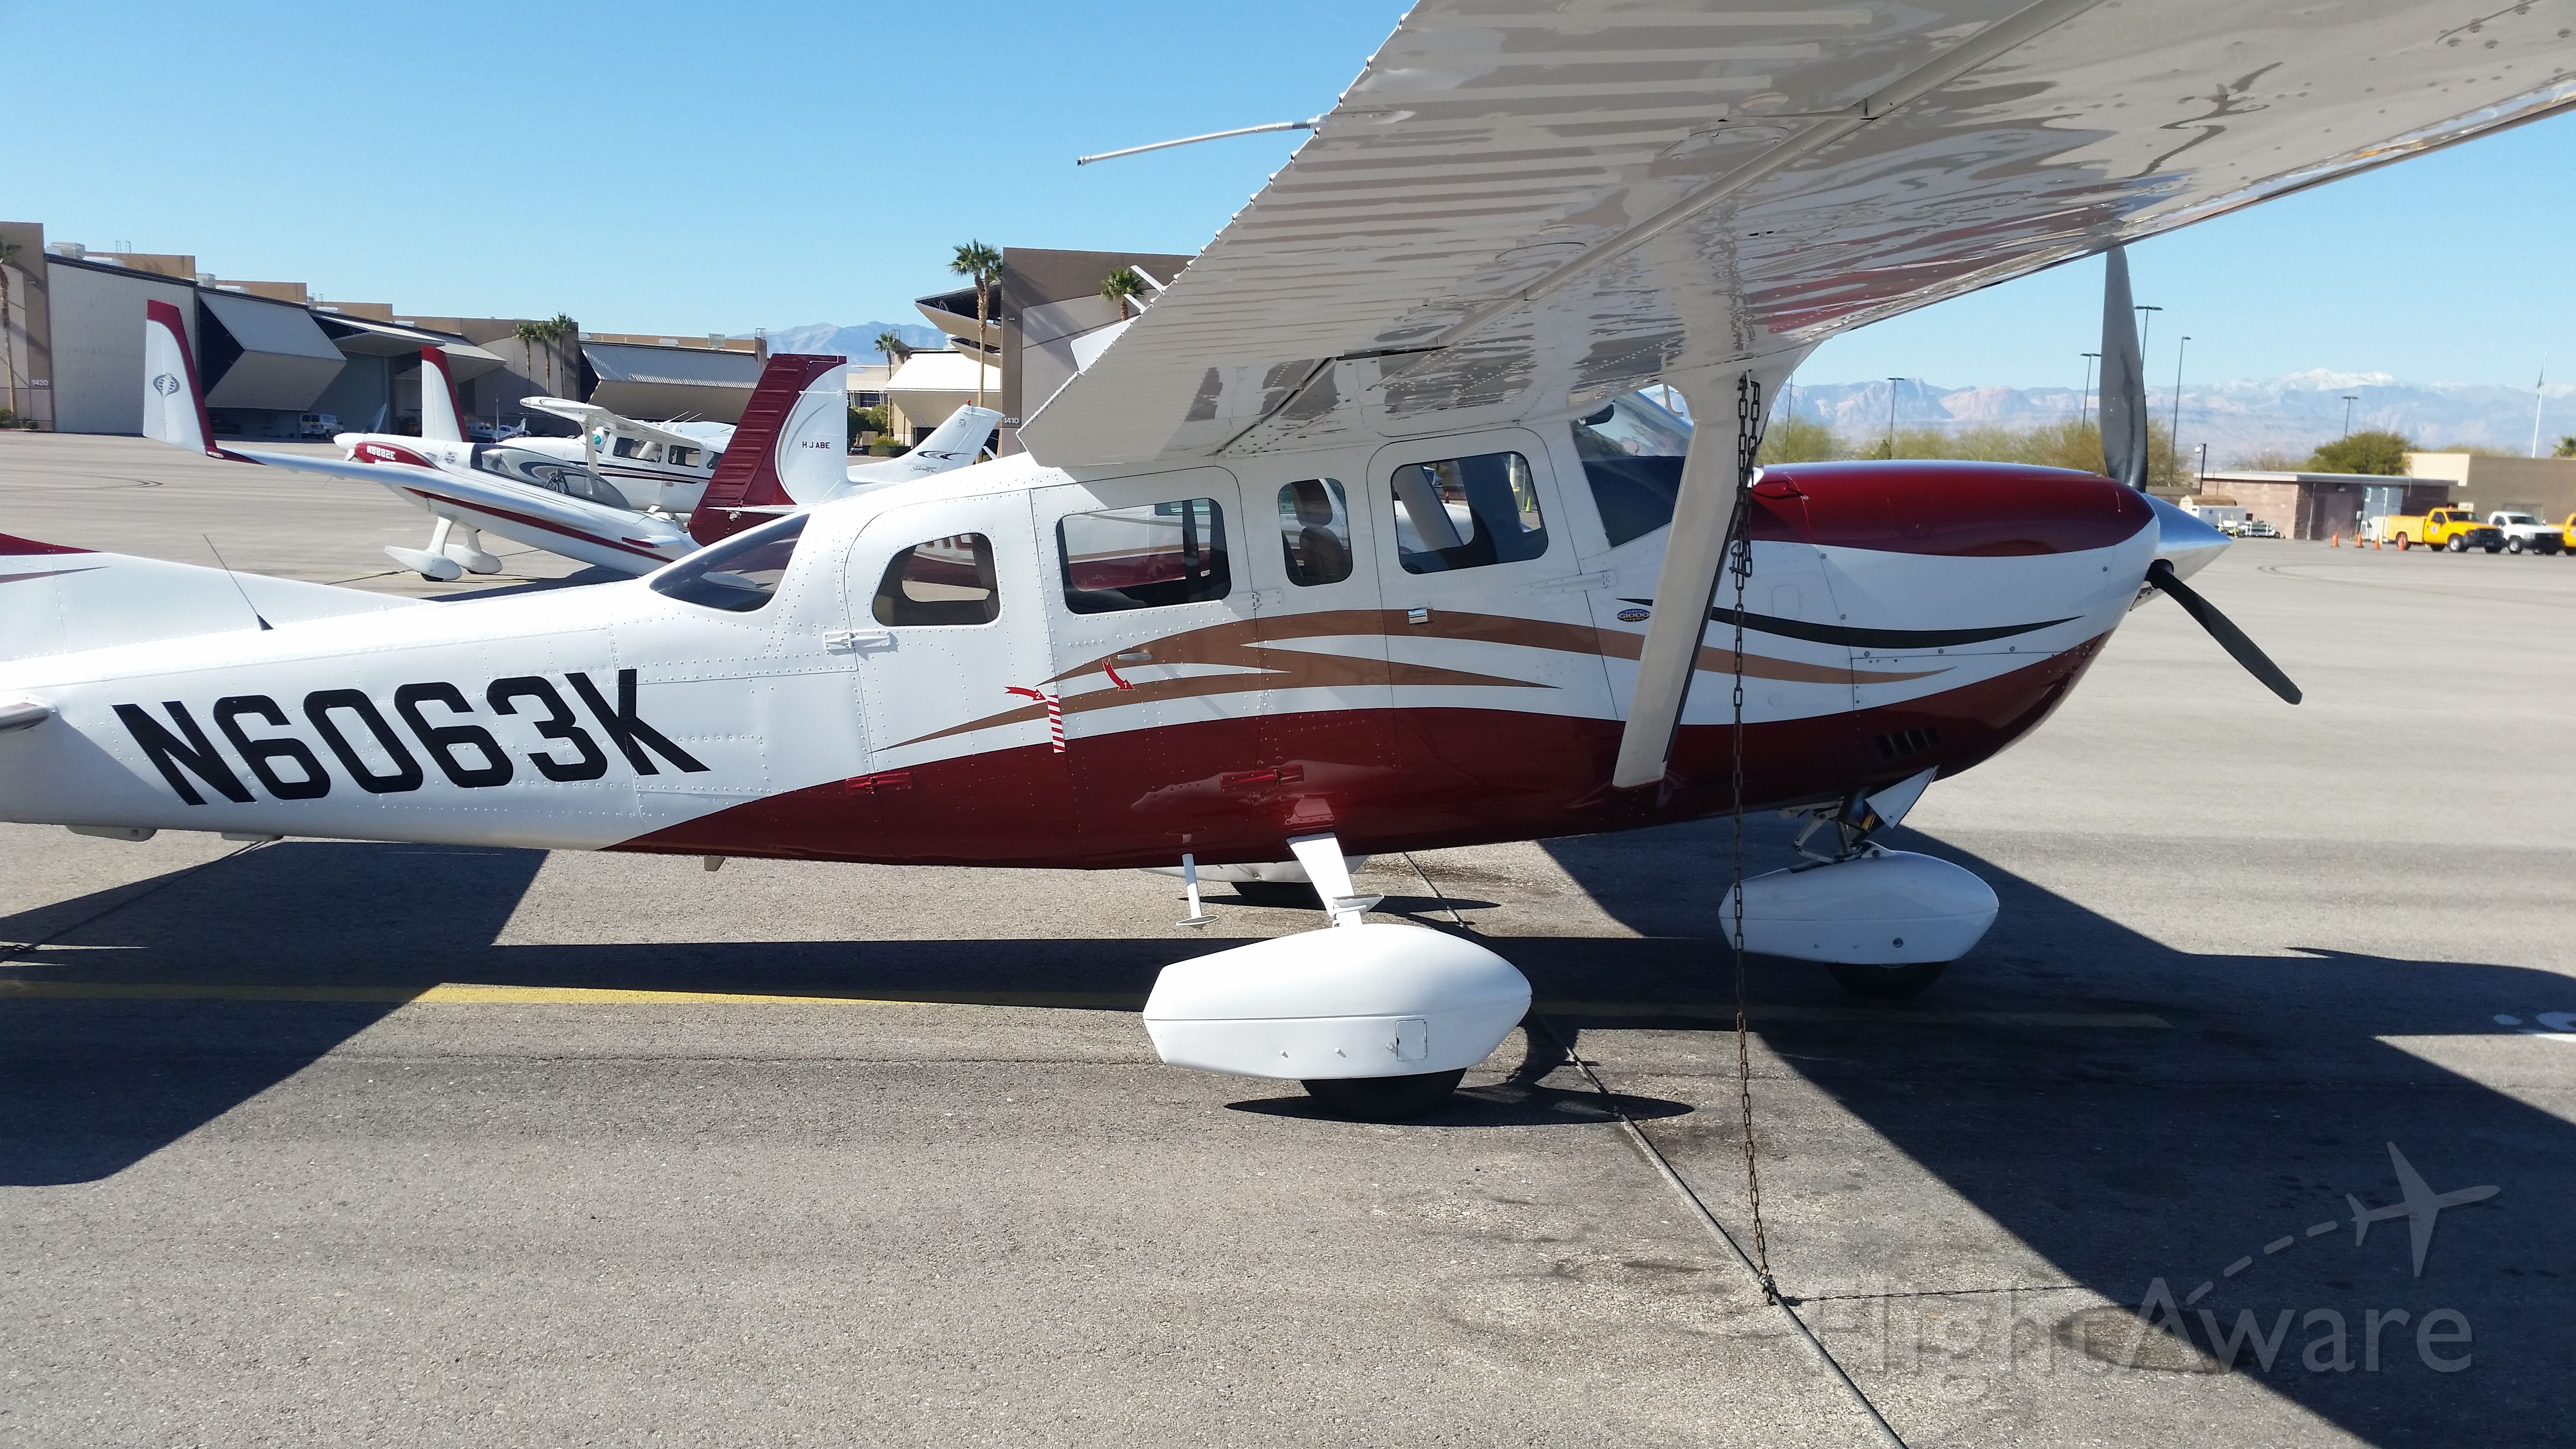 Cessna 206 Stationair (N6063K) - Saw this great looking T206 sitting on the ramp at Henderson Executive. Weeping wing, oversized tires, vortex generators, front passenger door, and tip tanks. Great back country aircraft with about every options available! Very nice!